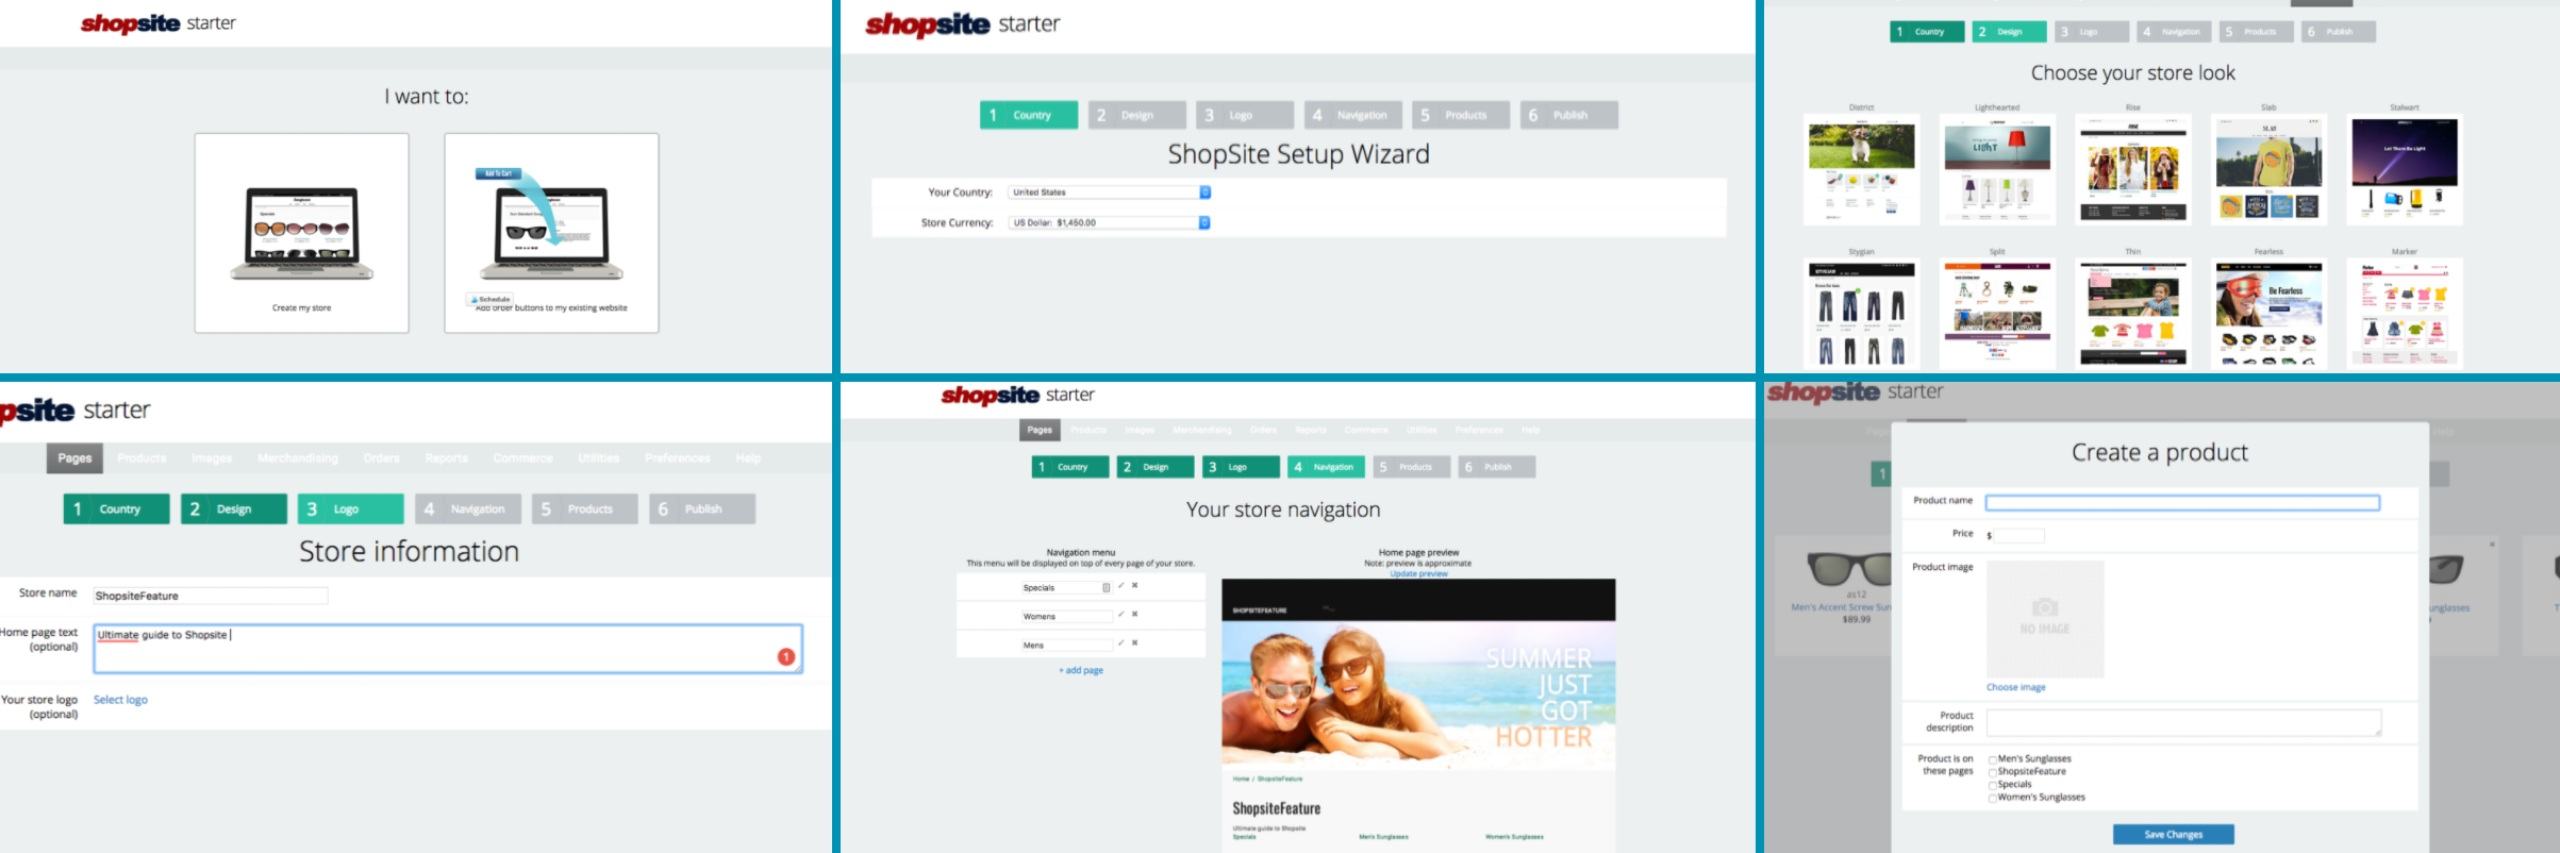 Ultimate Guide to ShopSite Wizard Image